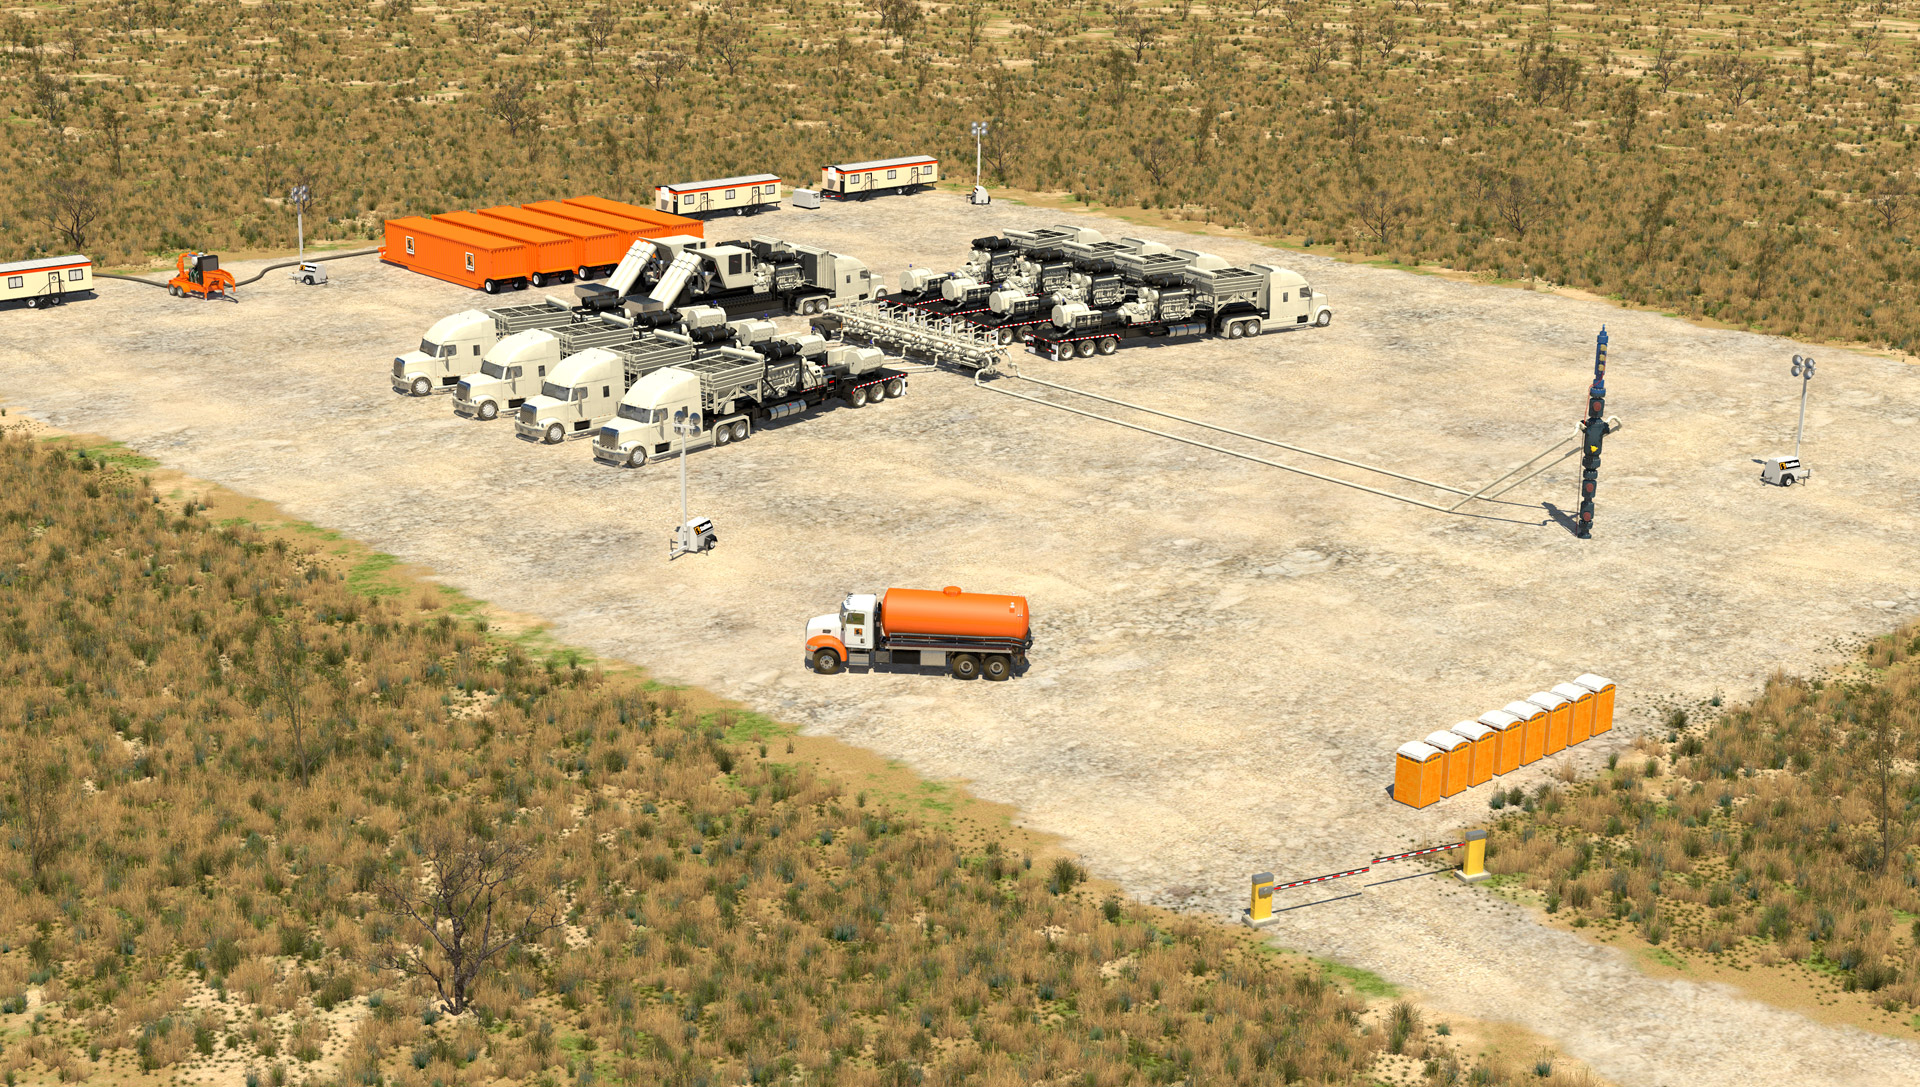 Overhead view of Stallions completions equipment and services in field